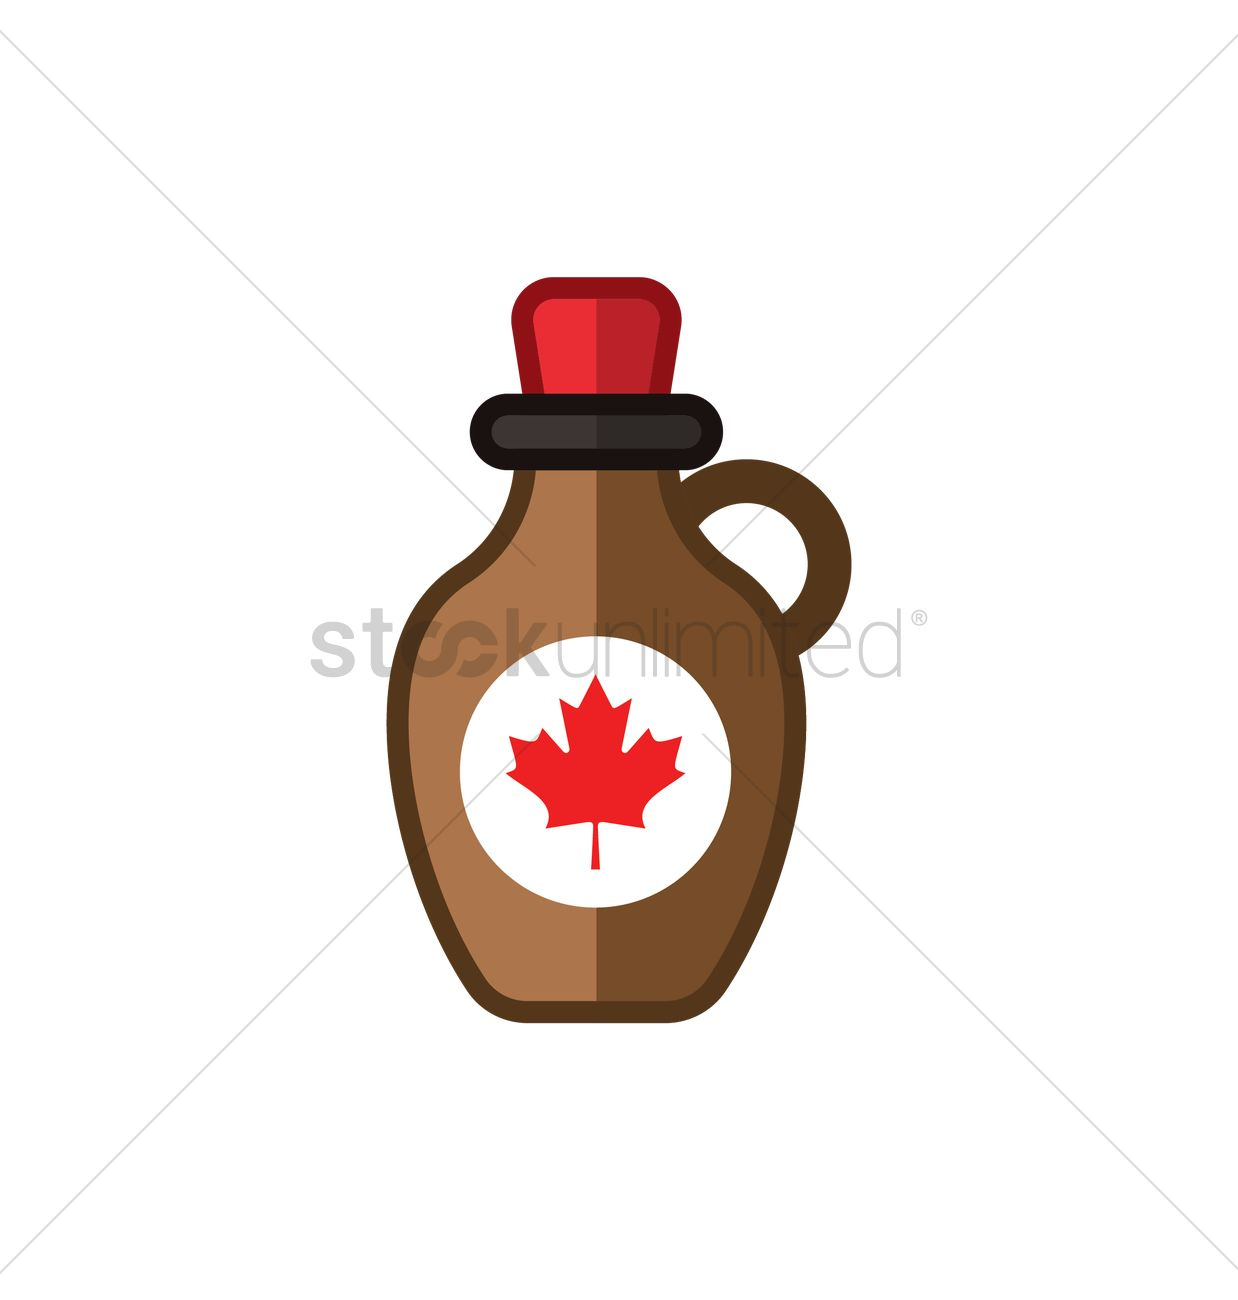 Bottle of maple syrup Vector Image.